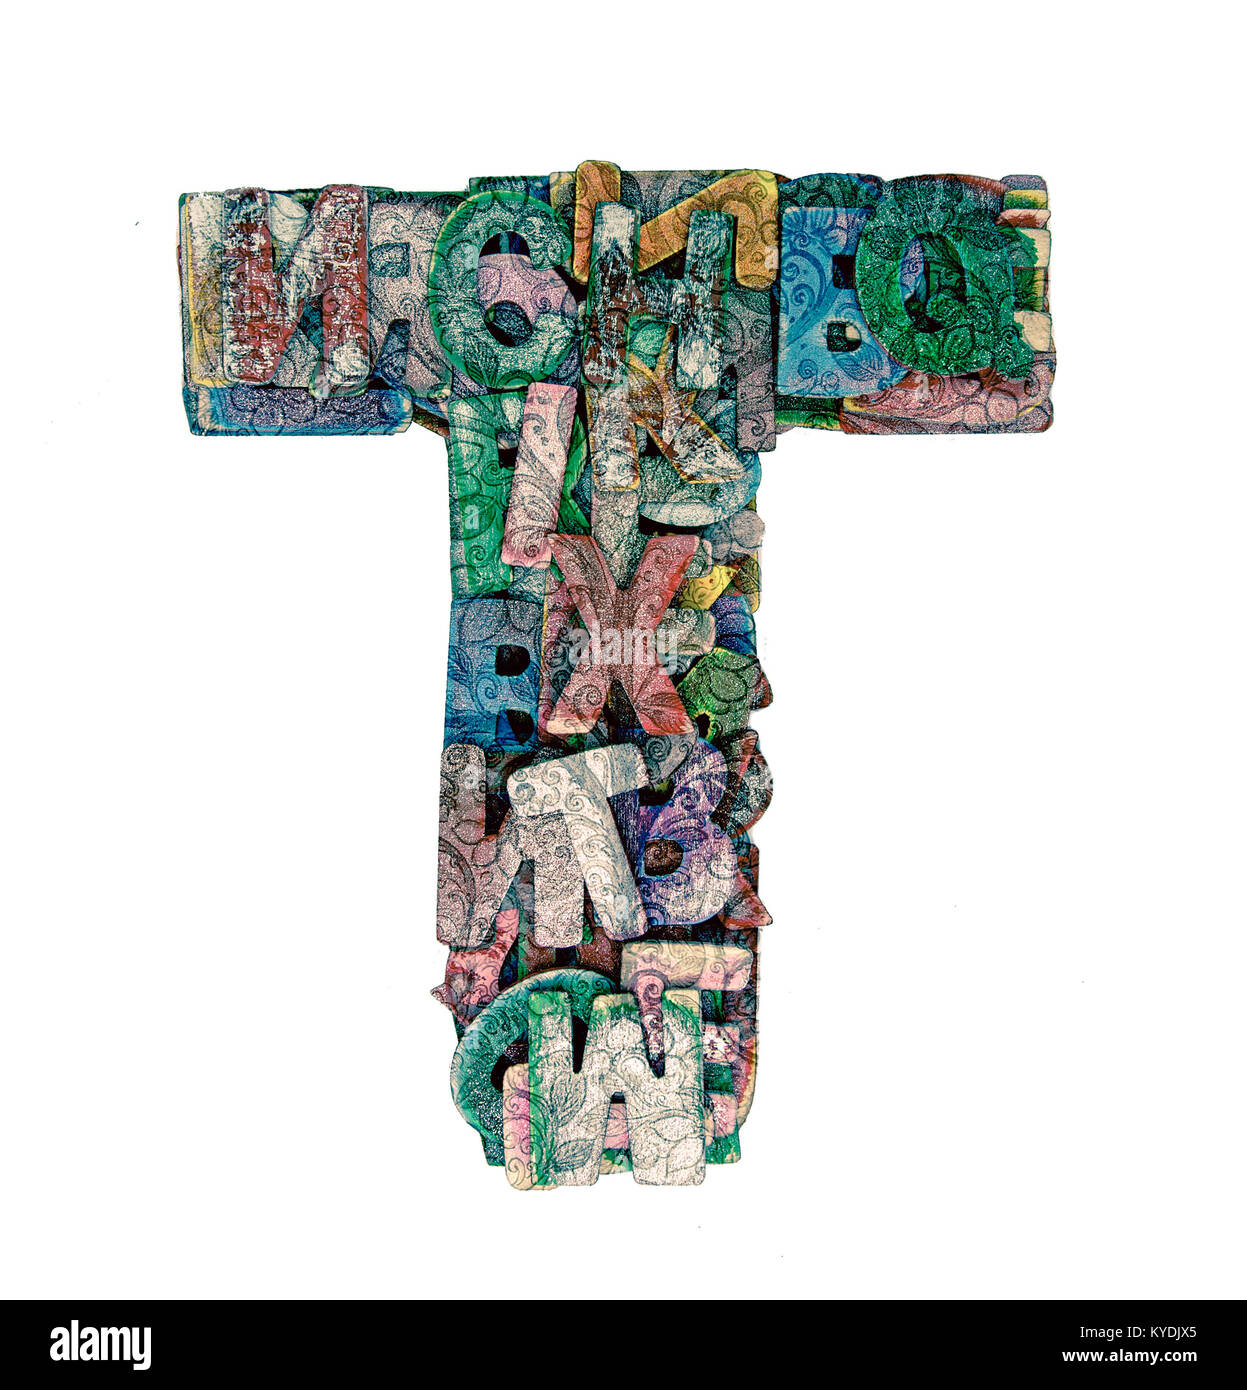 lots of small wooden letters to make up the letter t